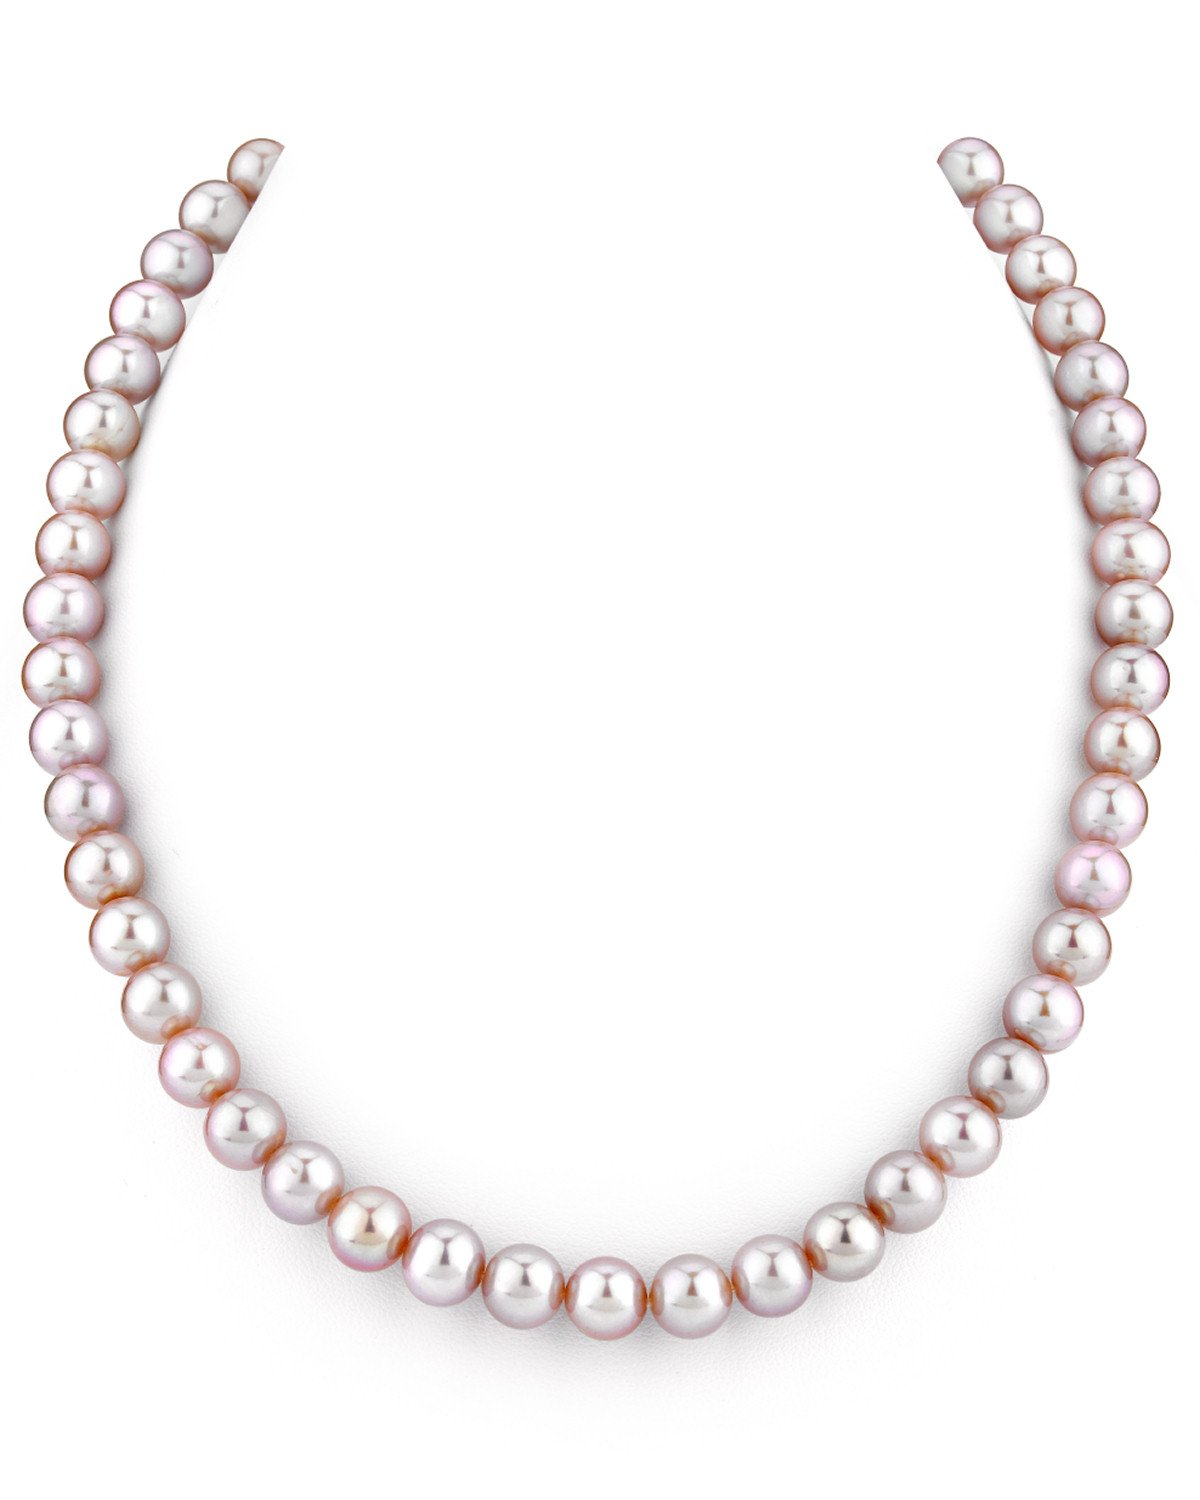 THE PEARL SOURCE 14K Gold 7-8mm AAAA Quality Pink Freshwater Cultured Pearl Necklace for Women in 18'' Princess Length